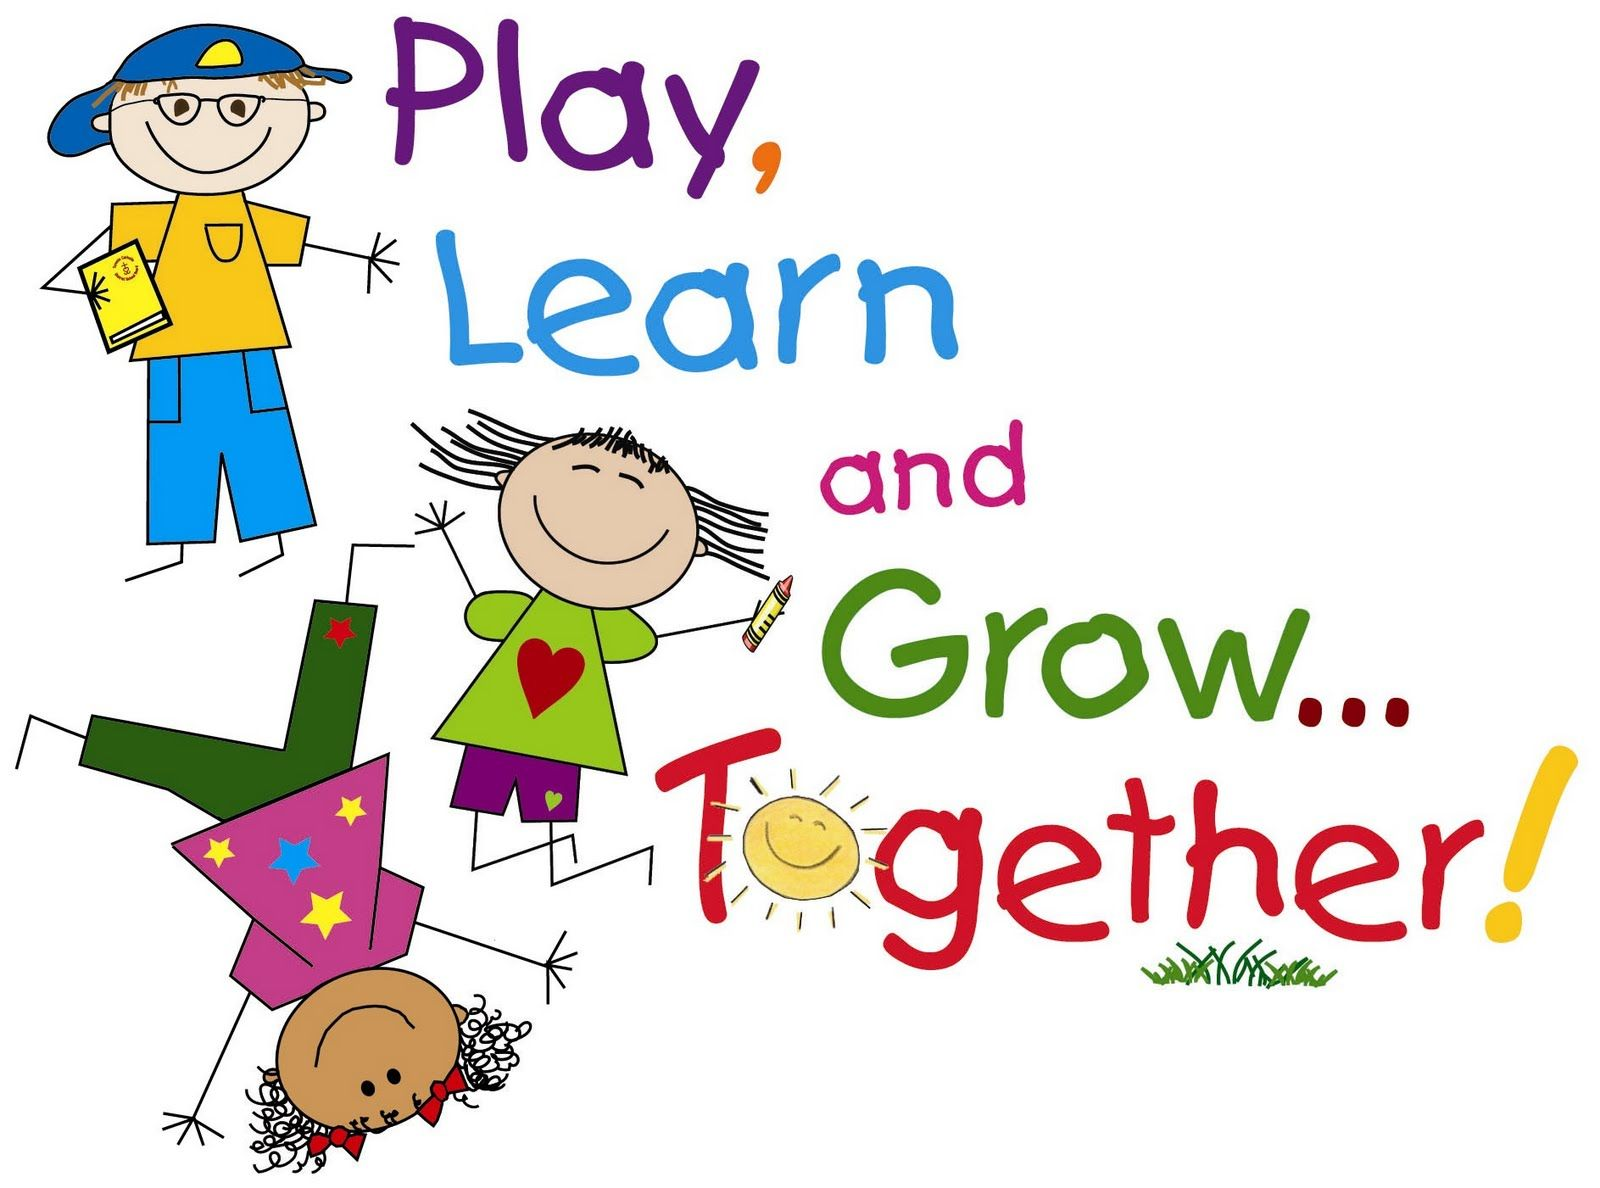 Daycare clipart. You need to take